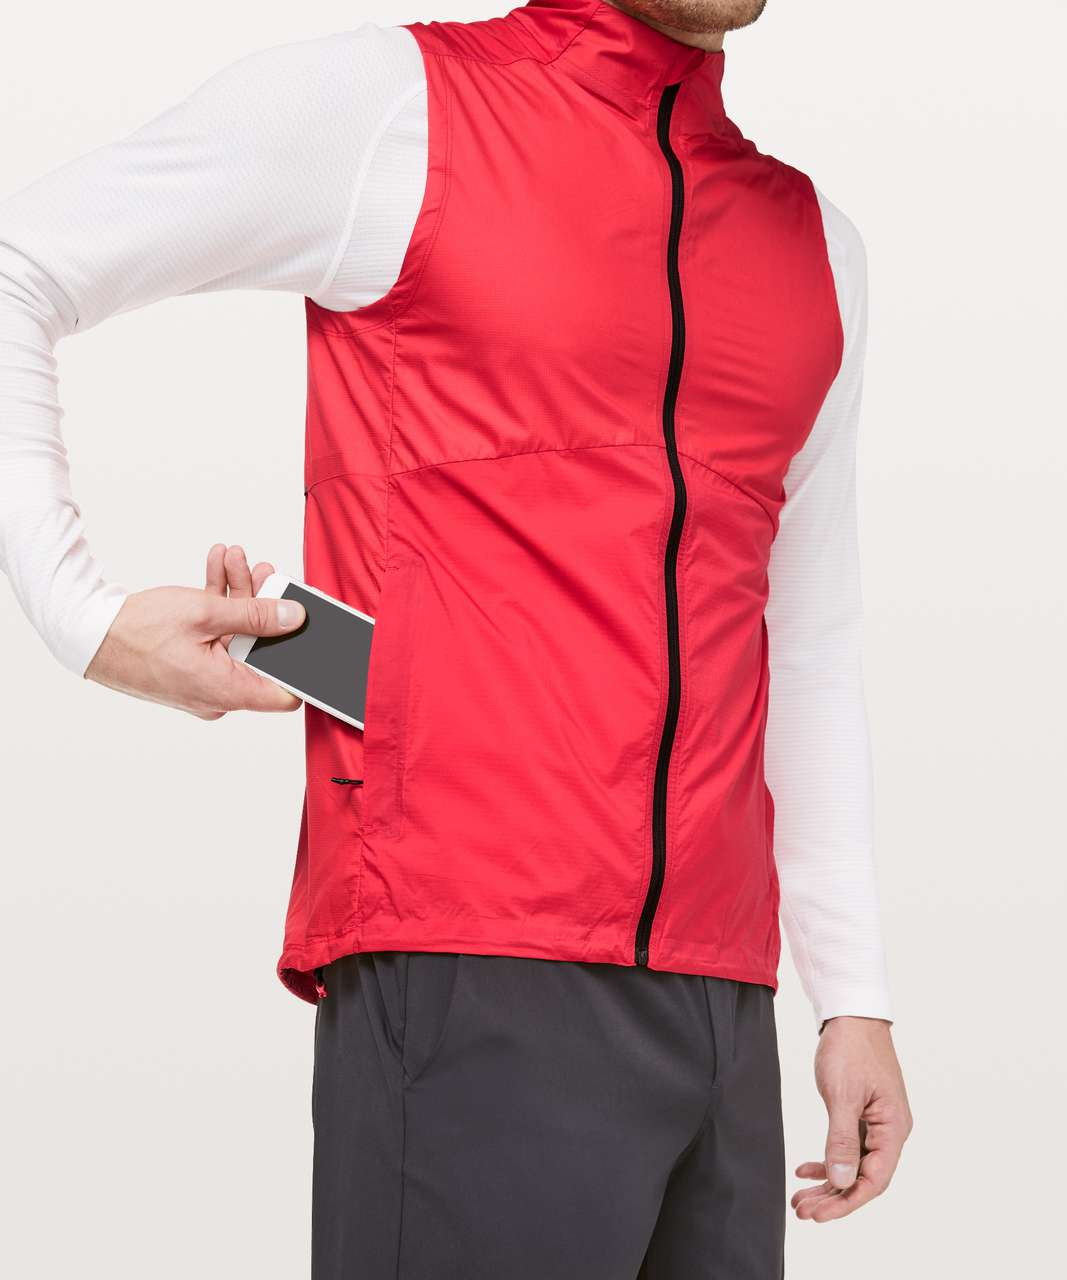 Lululemon Active Vest - Spicy Red